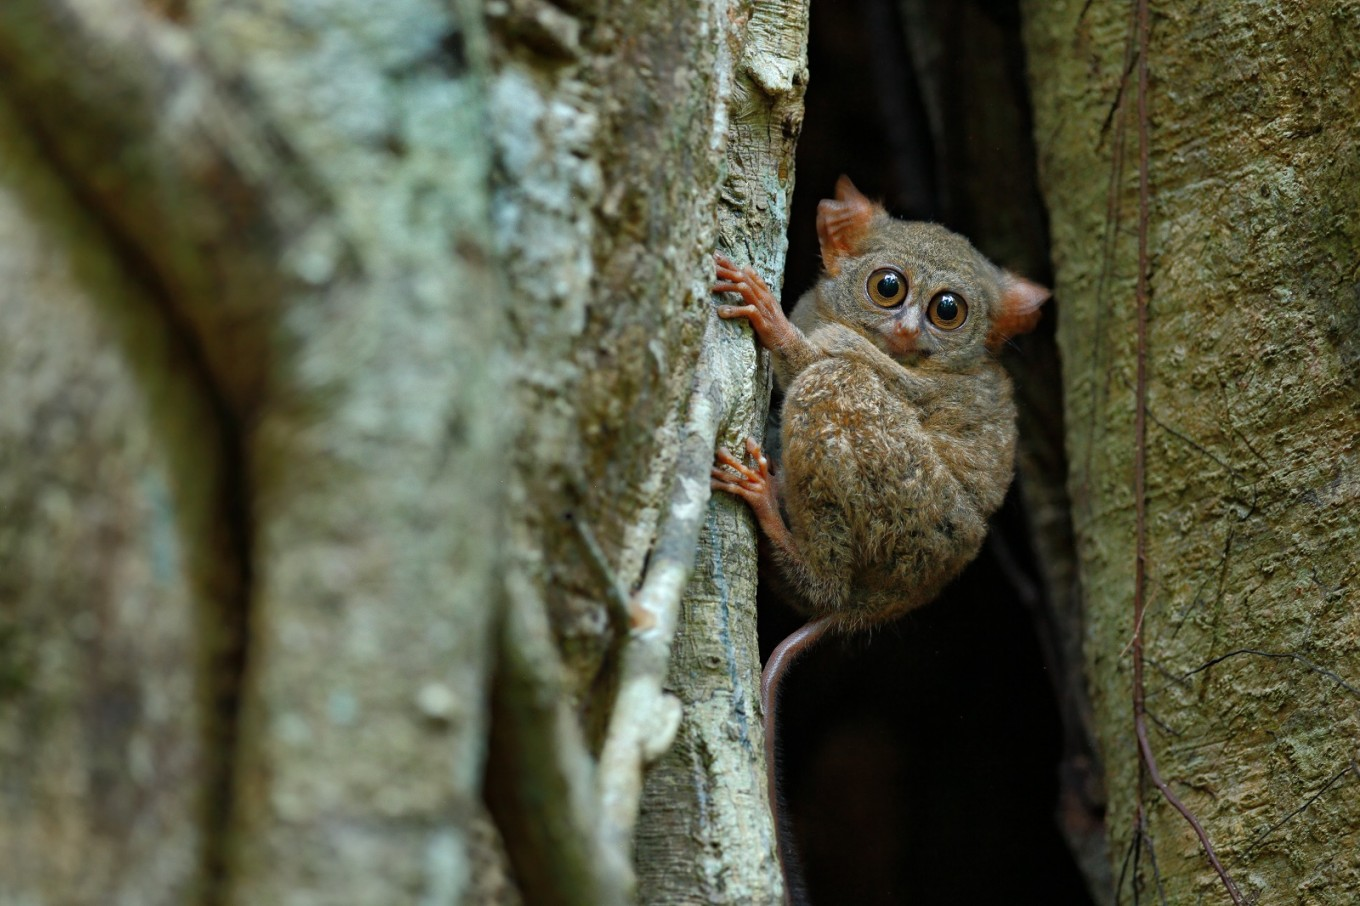 Photographer Riza Marlon launches a book on Indonesia's endemic species